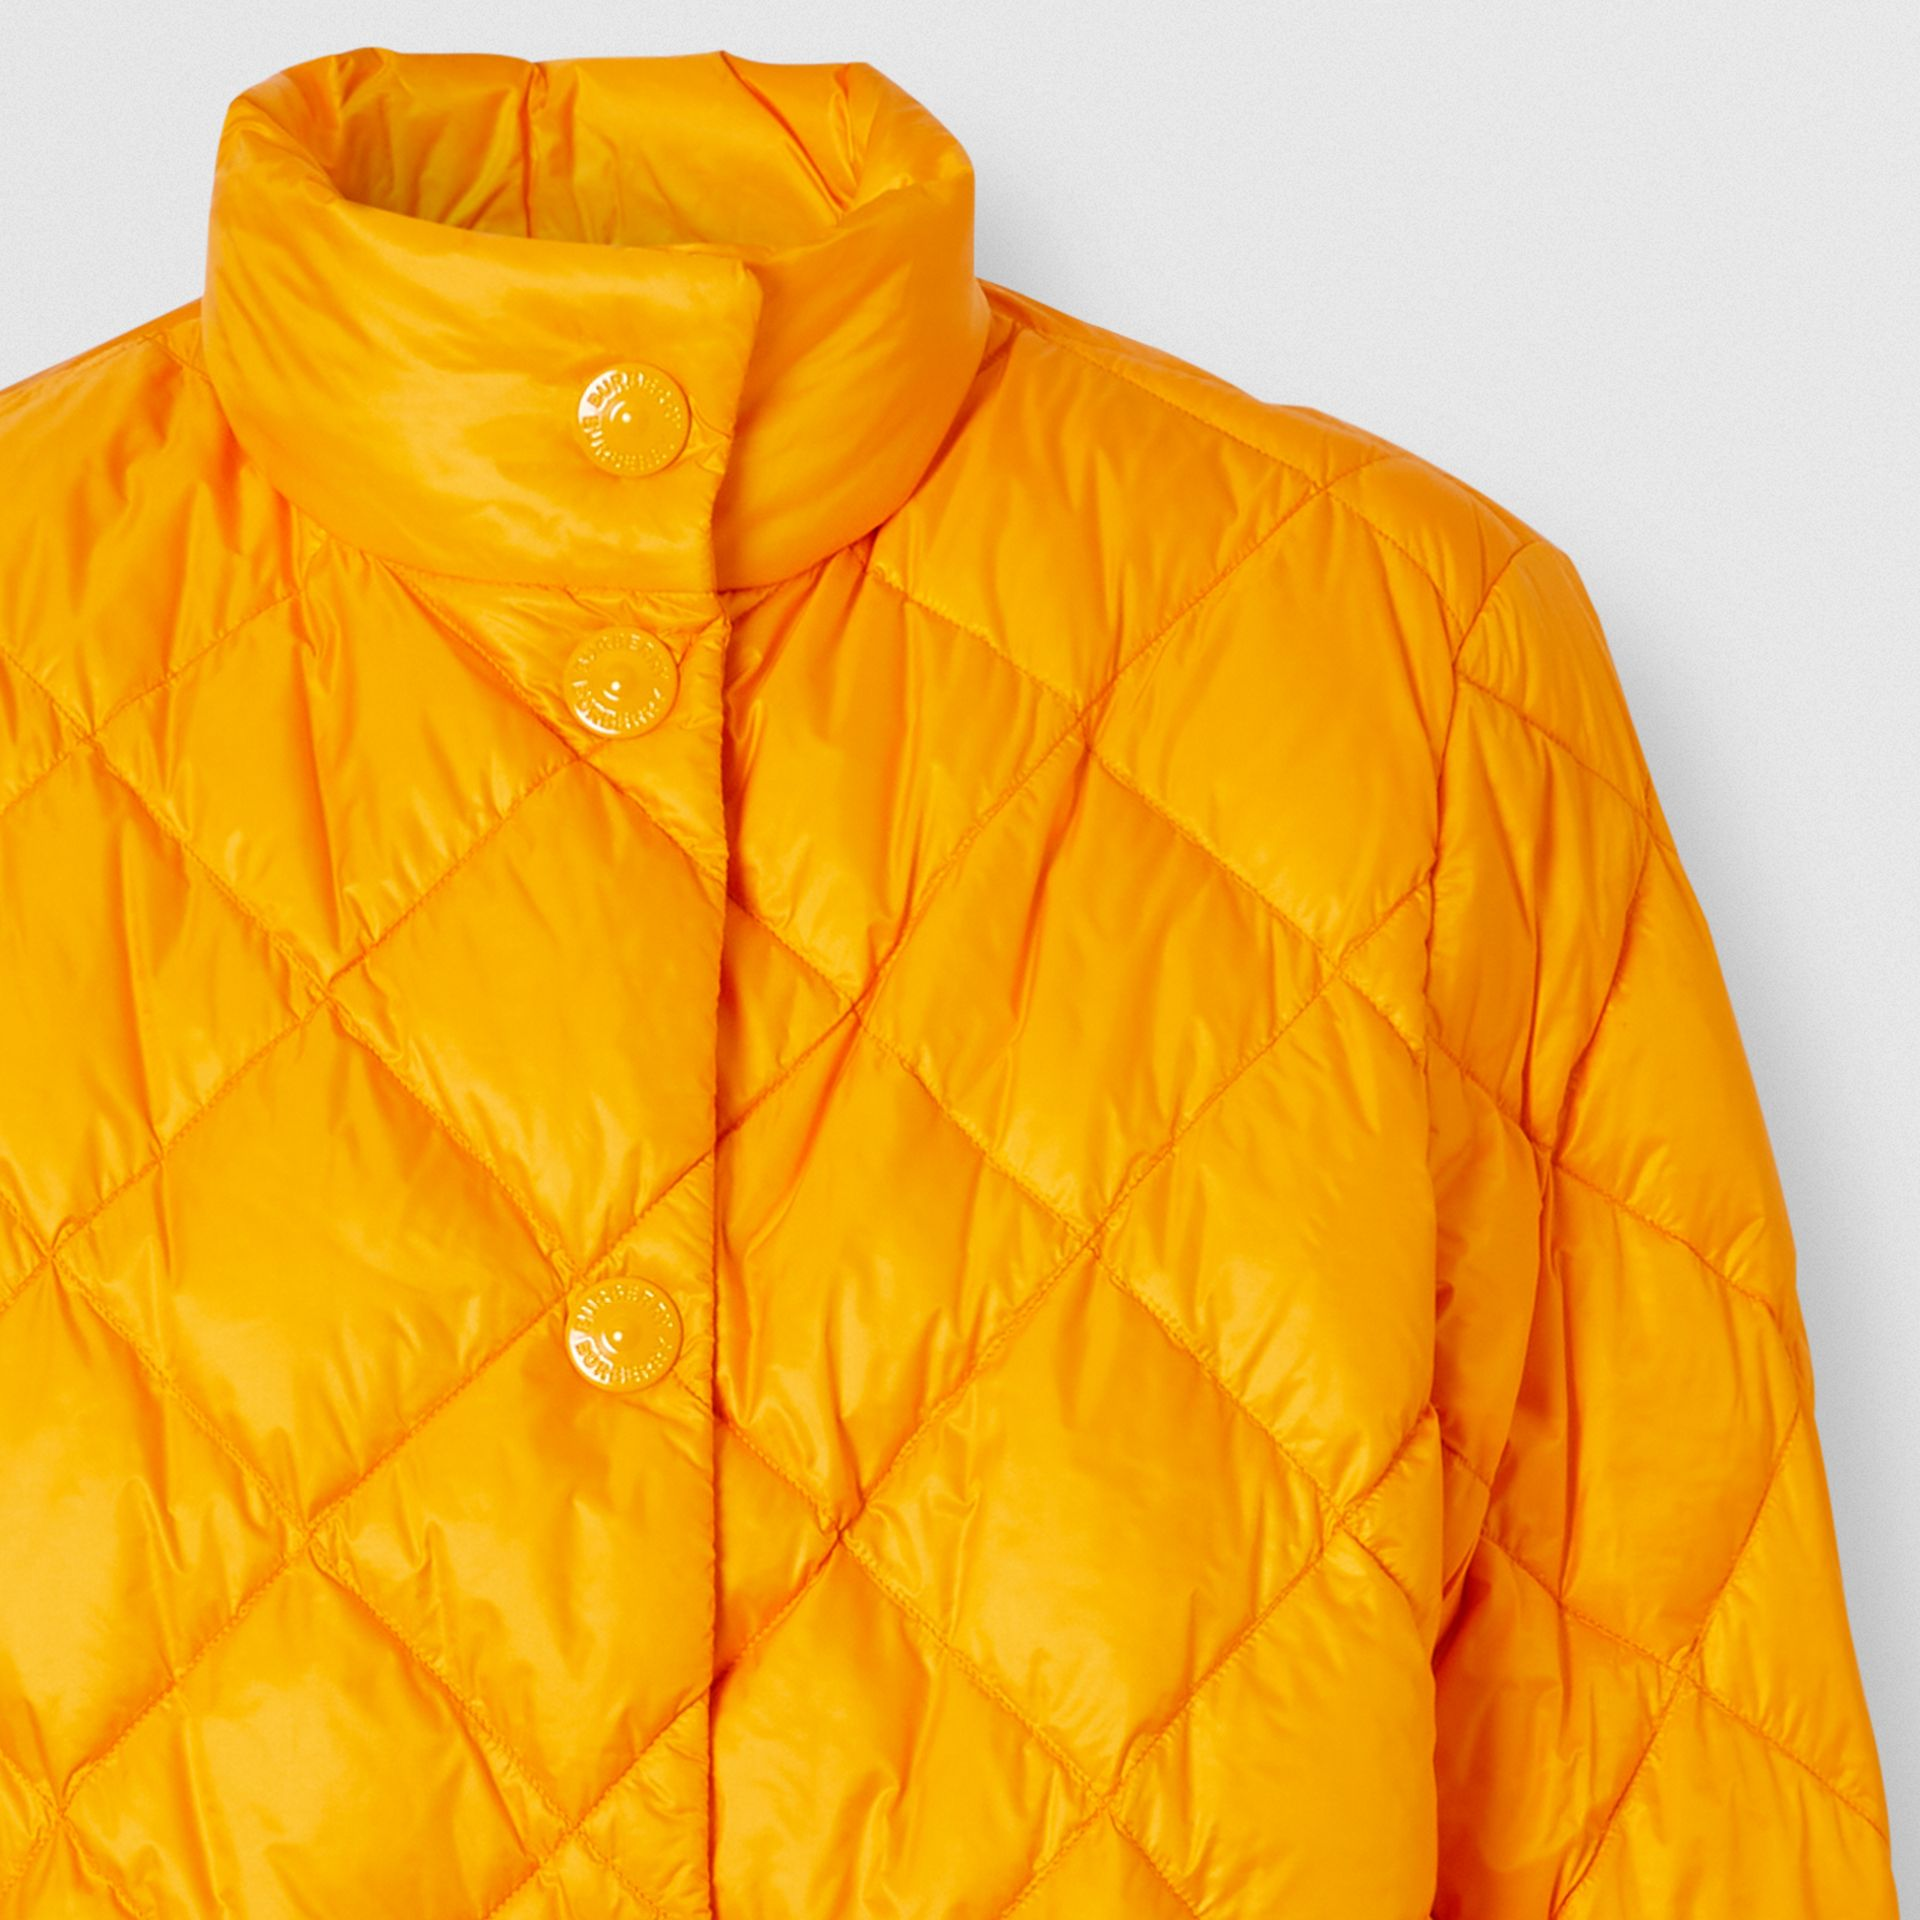 Diamond Quilted Down-filled Jacket in Citrus Orange - Women | Burberry - gallery image 6